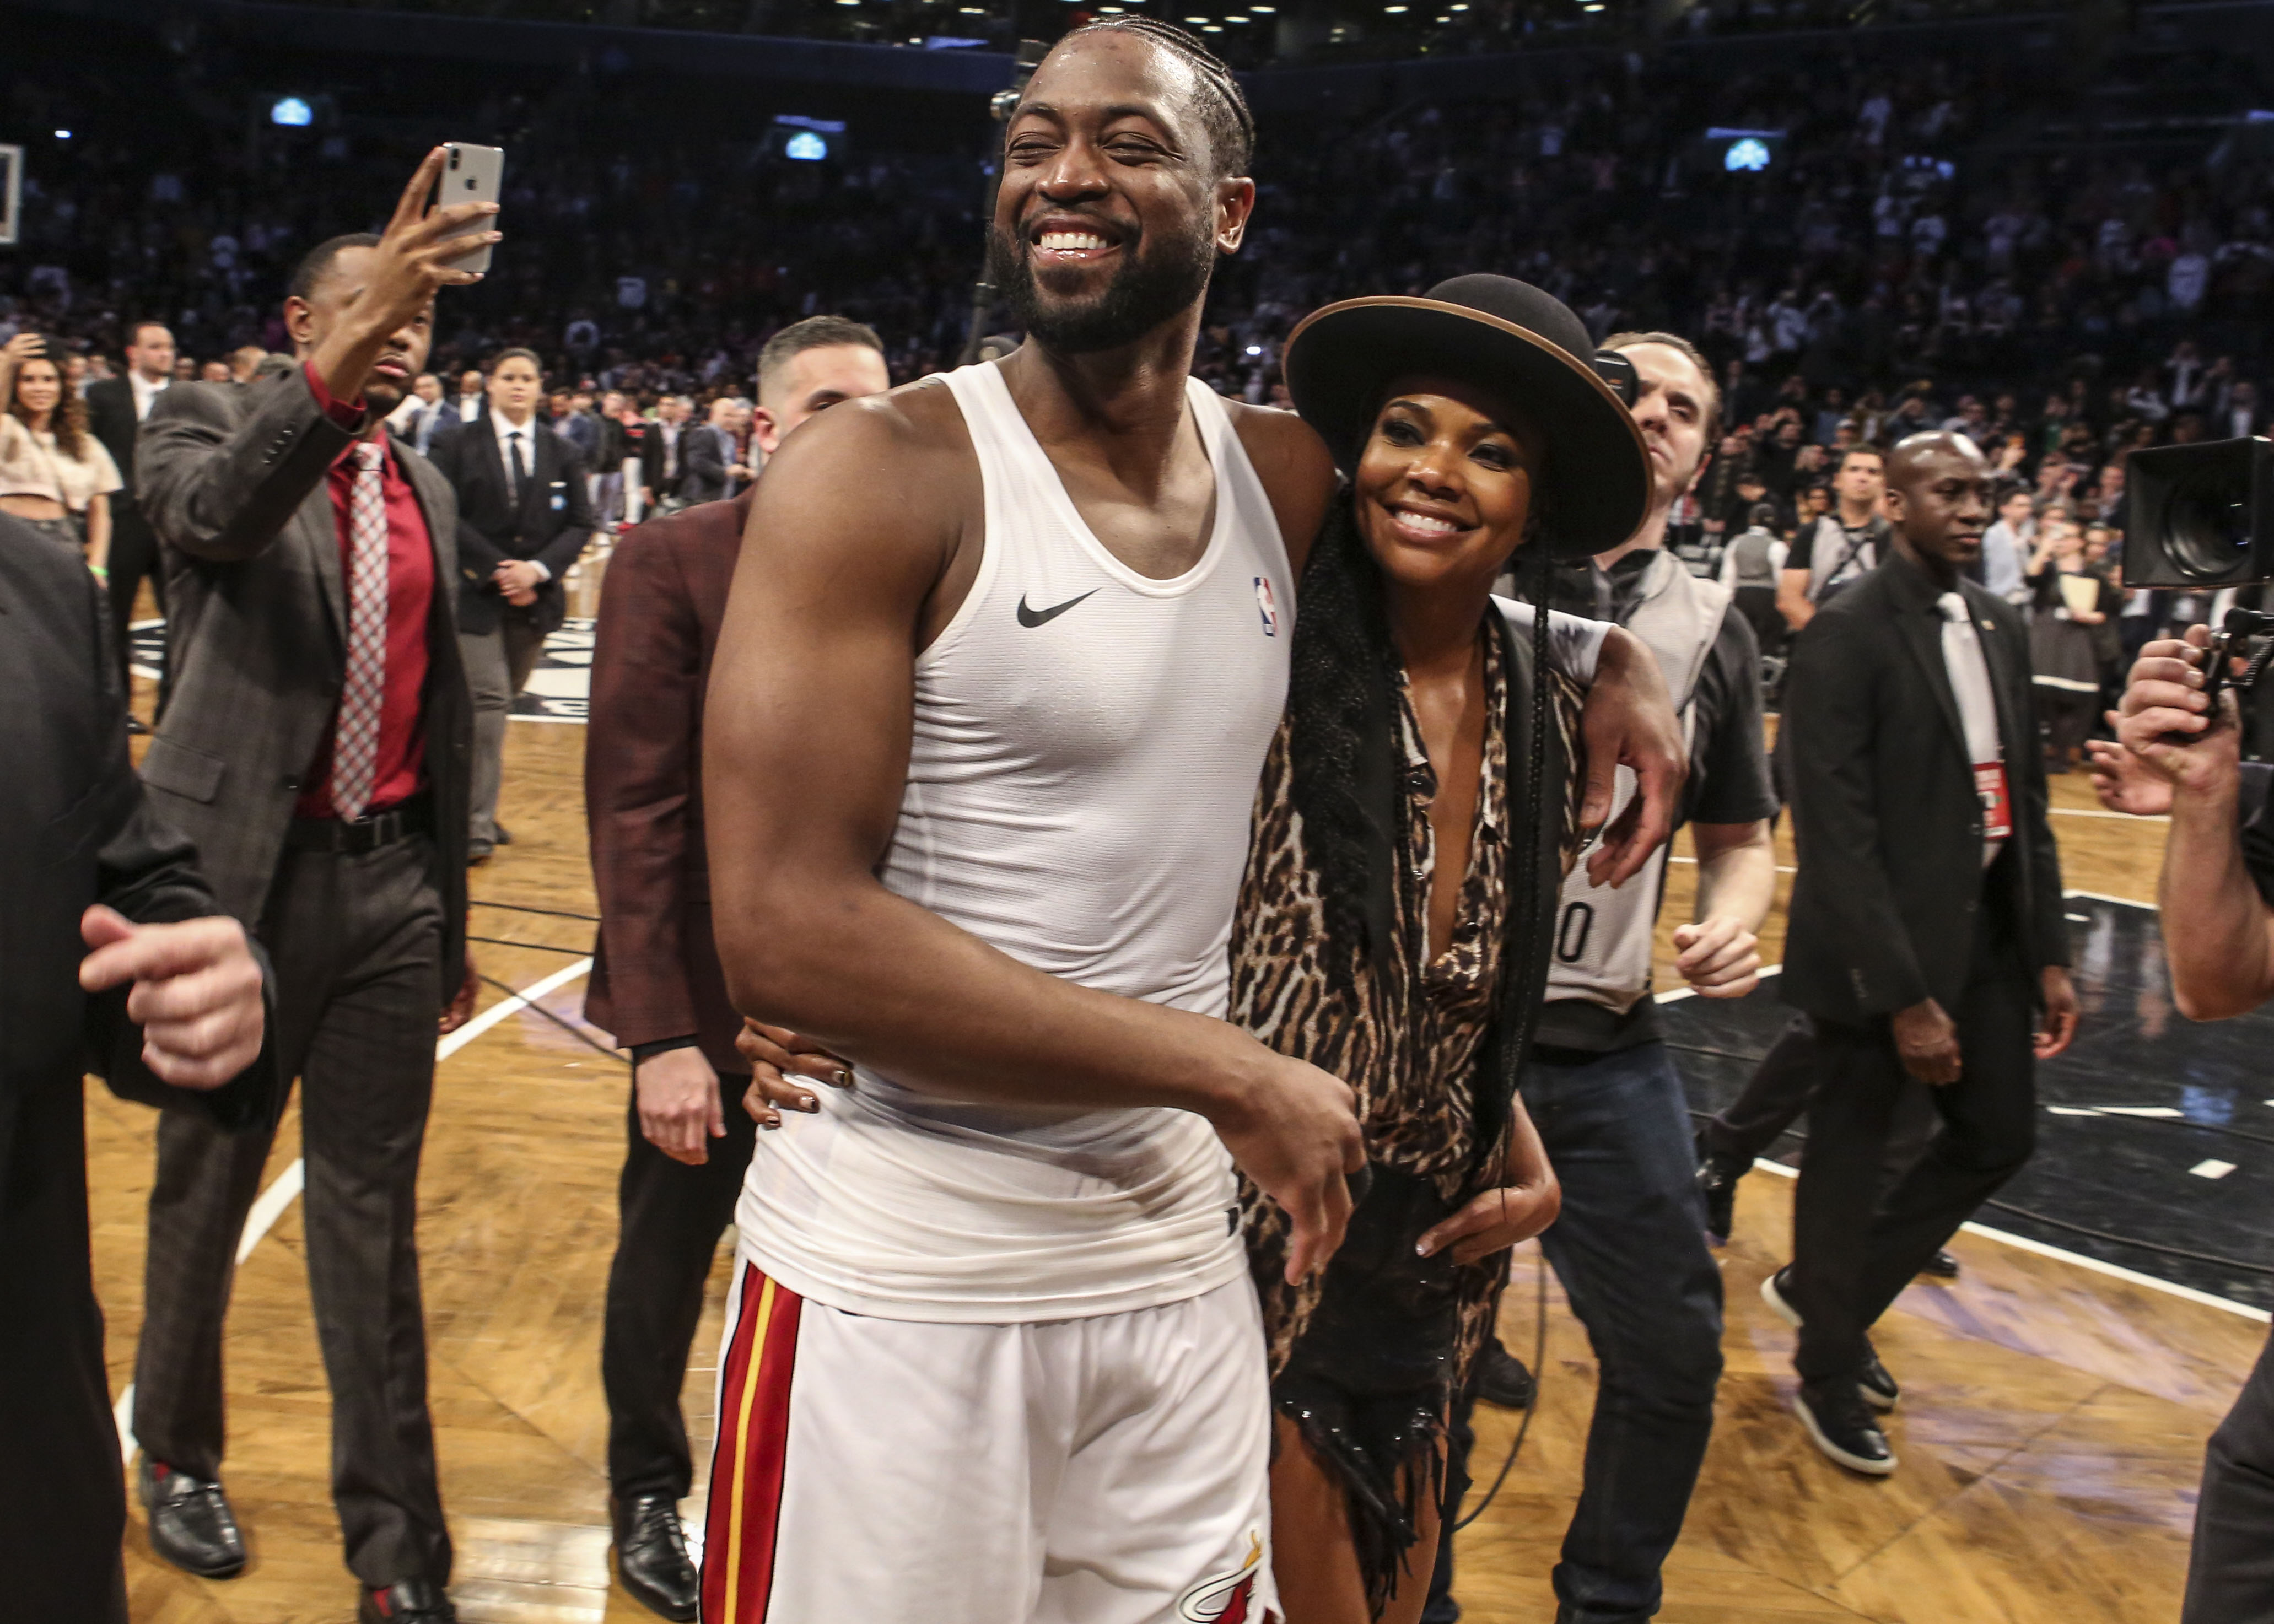 Heat rumors: Dwyane Wade hints at coming out of retirement due to Jimmy Butler trade